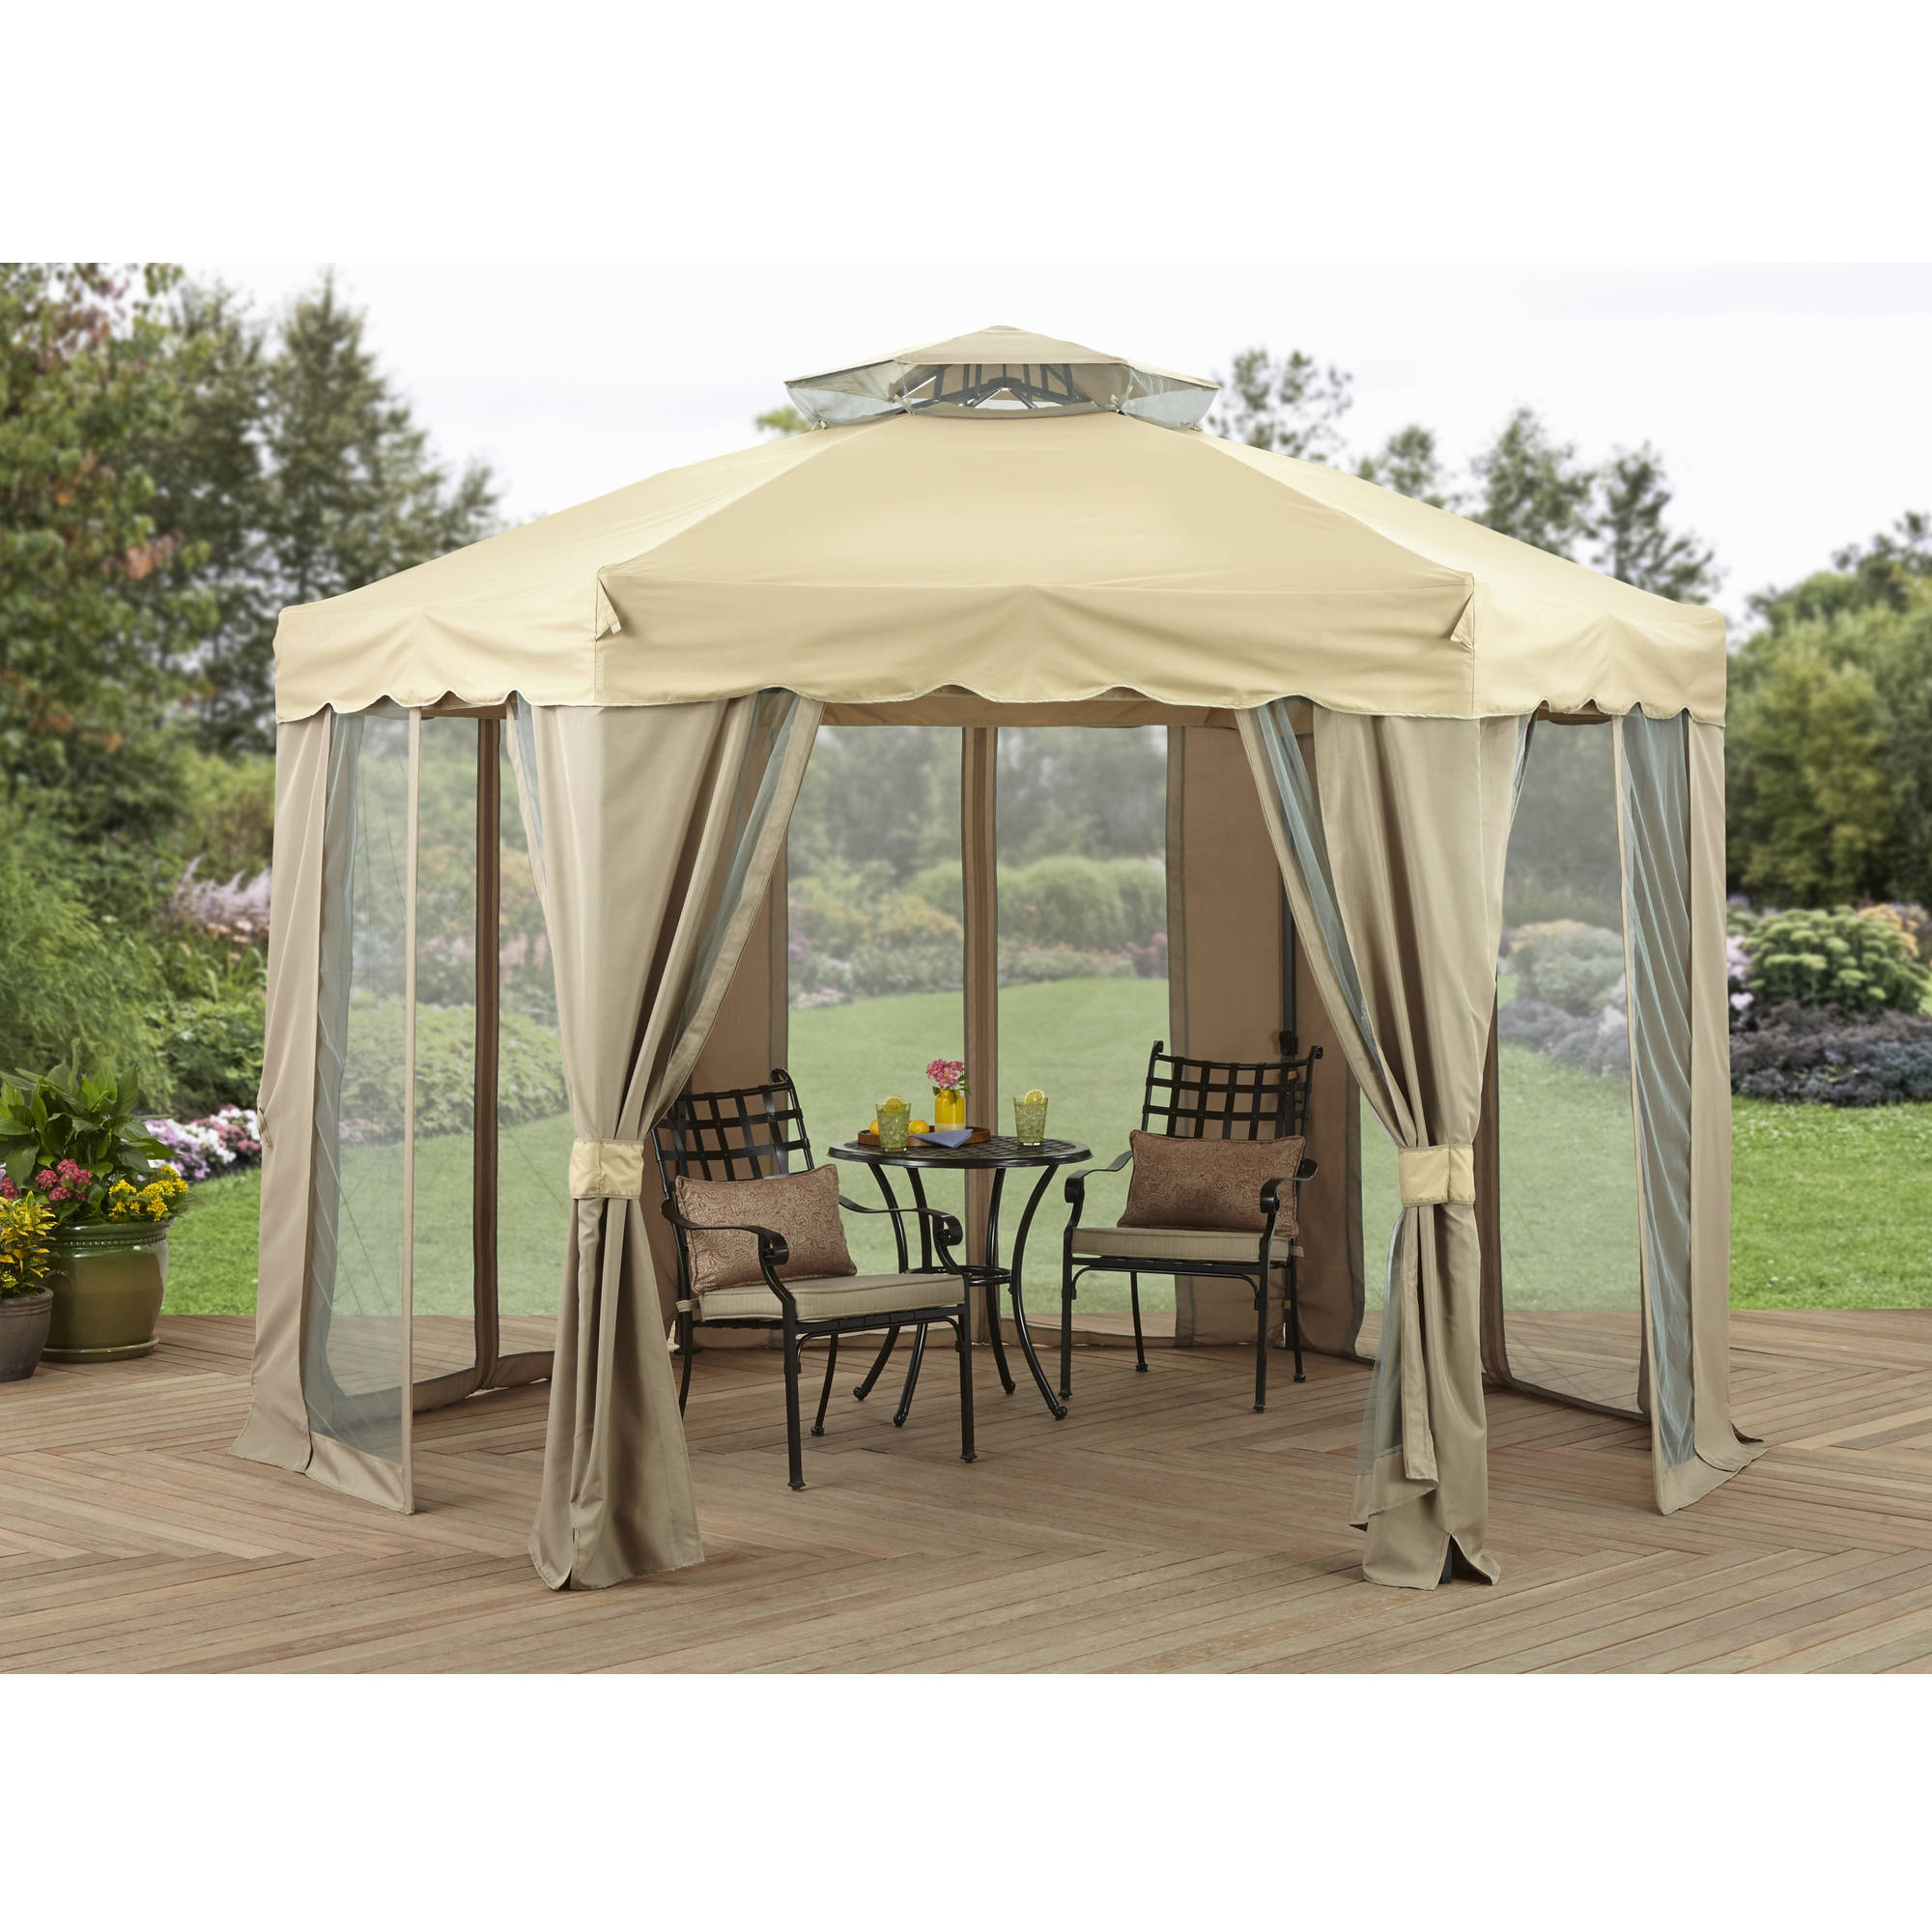 Better Homes and Gardens 12' x 12' Gilded Grove Gazebo